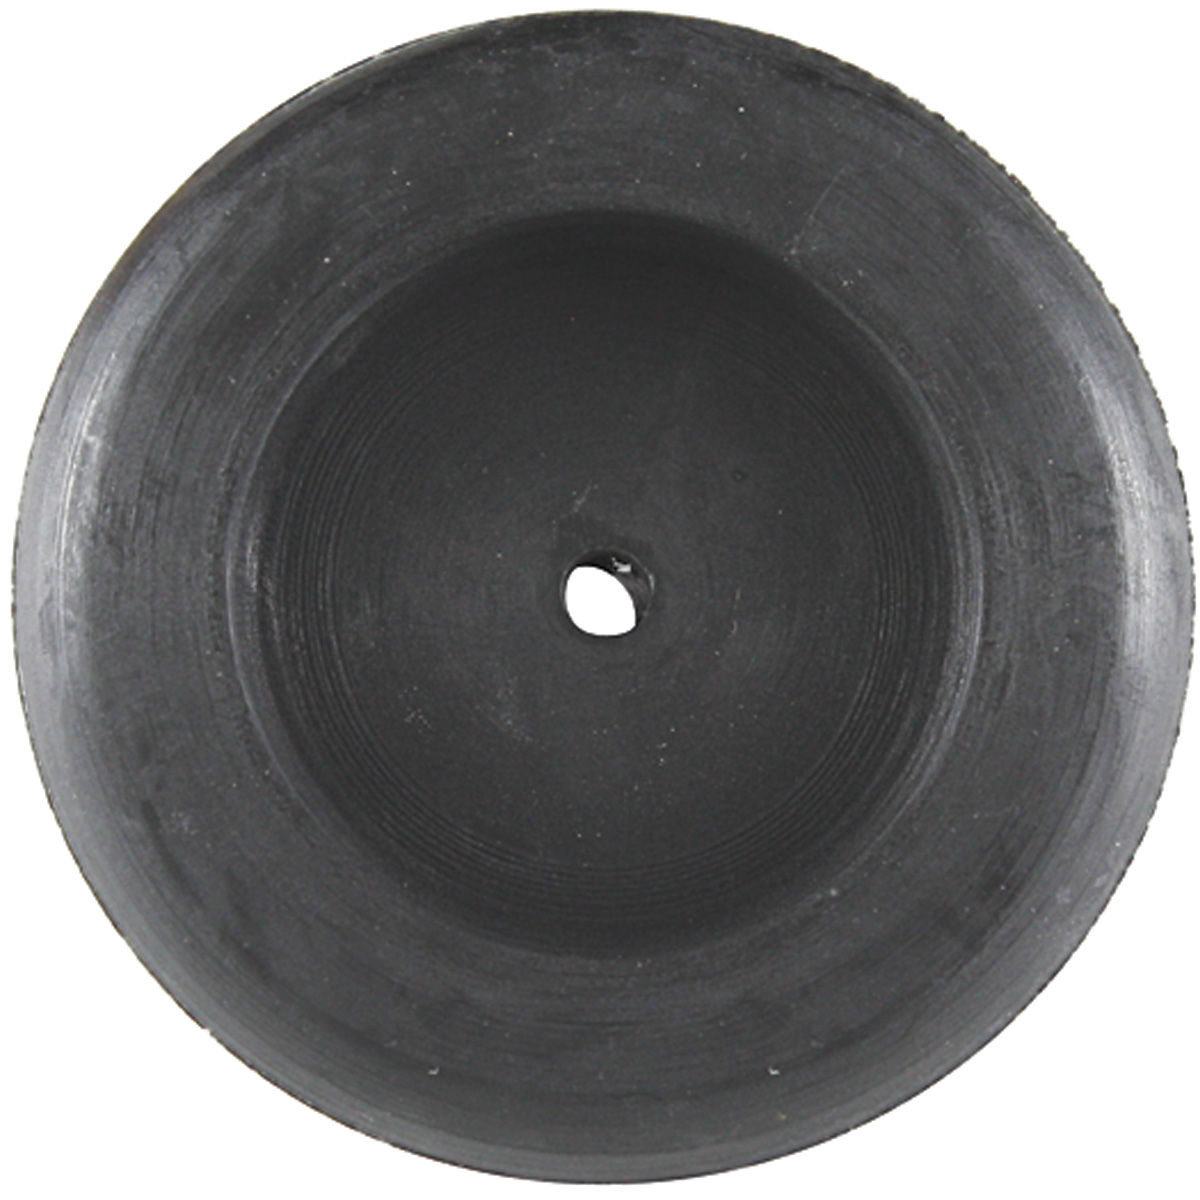 "Photo of Chevelle Firewall Grommet single-hole – 1-1/4"" dia."